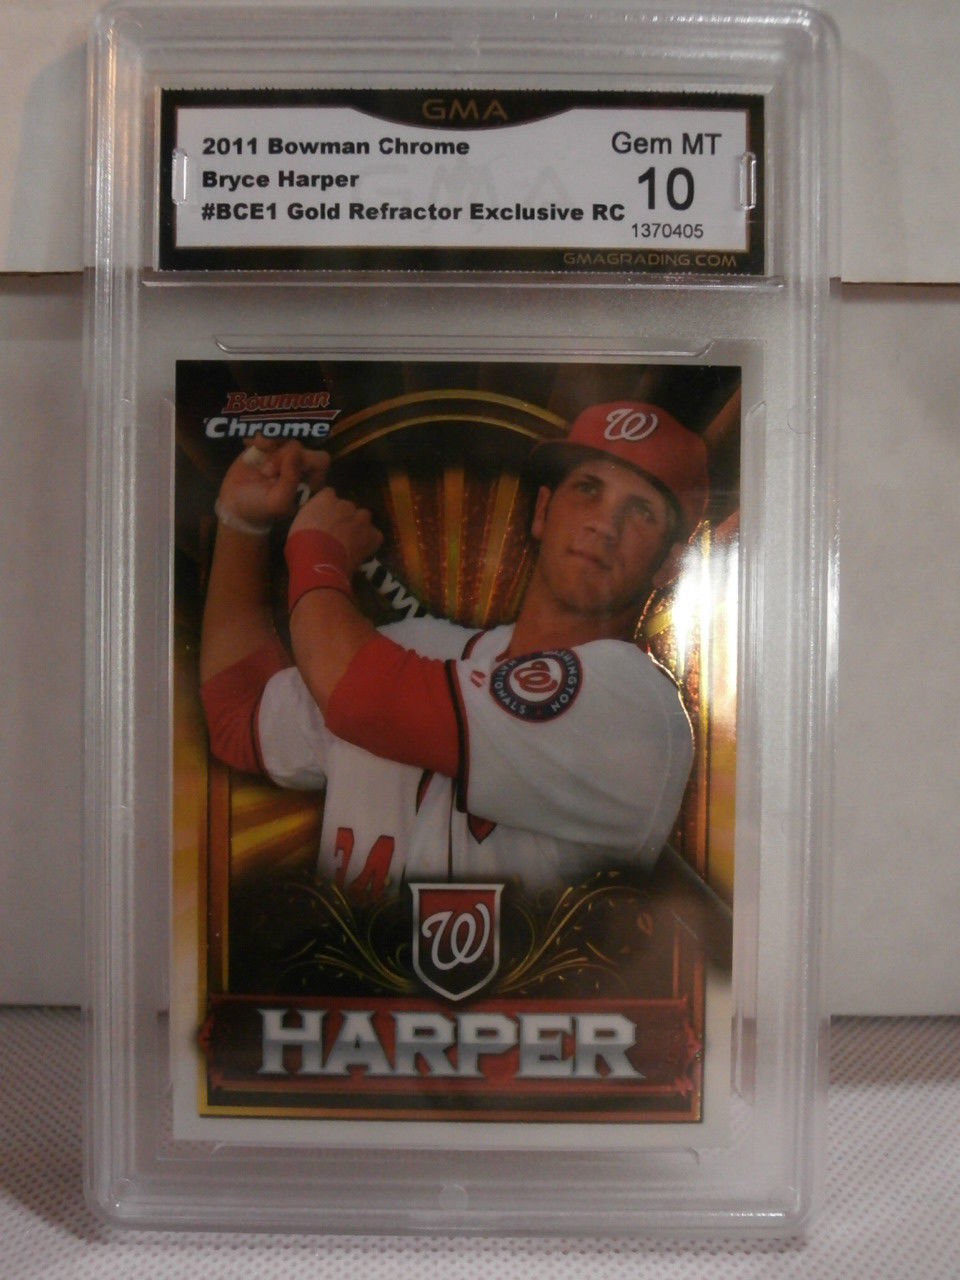 2011 Bowman Chrome Bryce Harper Gold Refractor Exclusive RC GMA Grade Gem mt 10